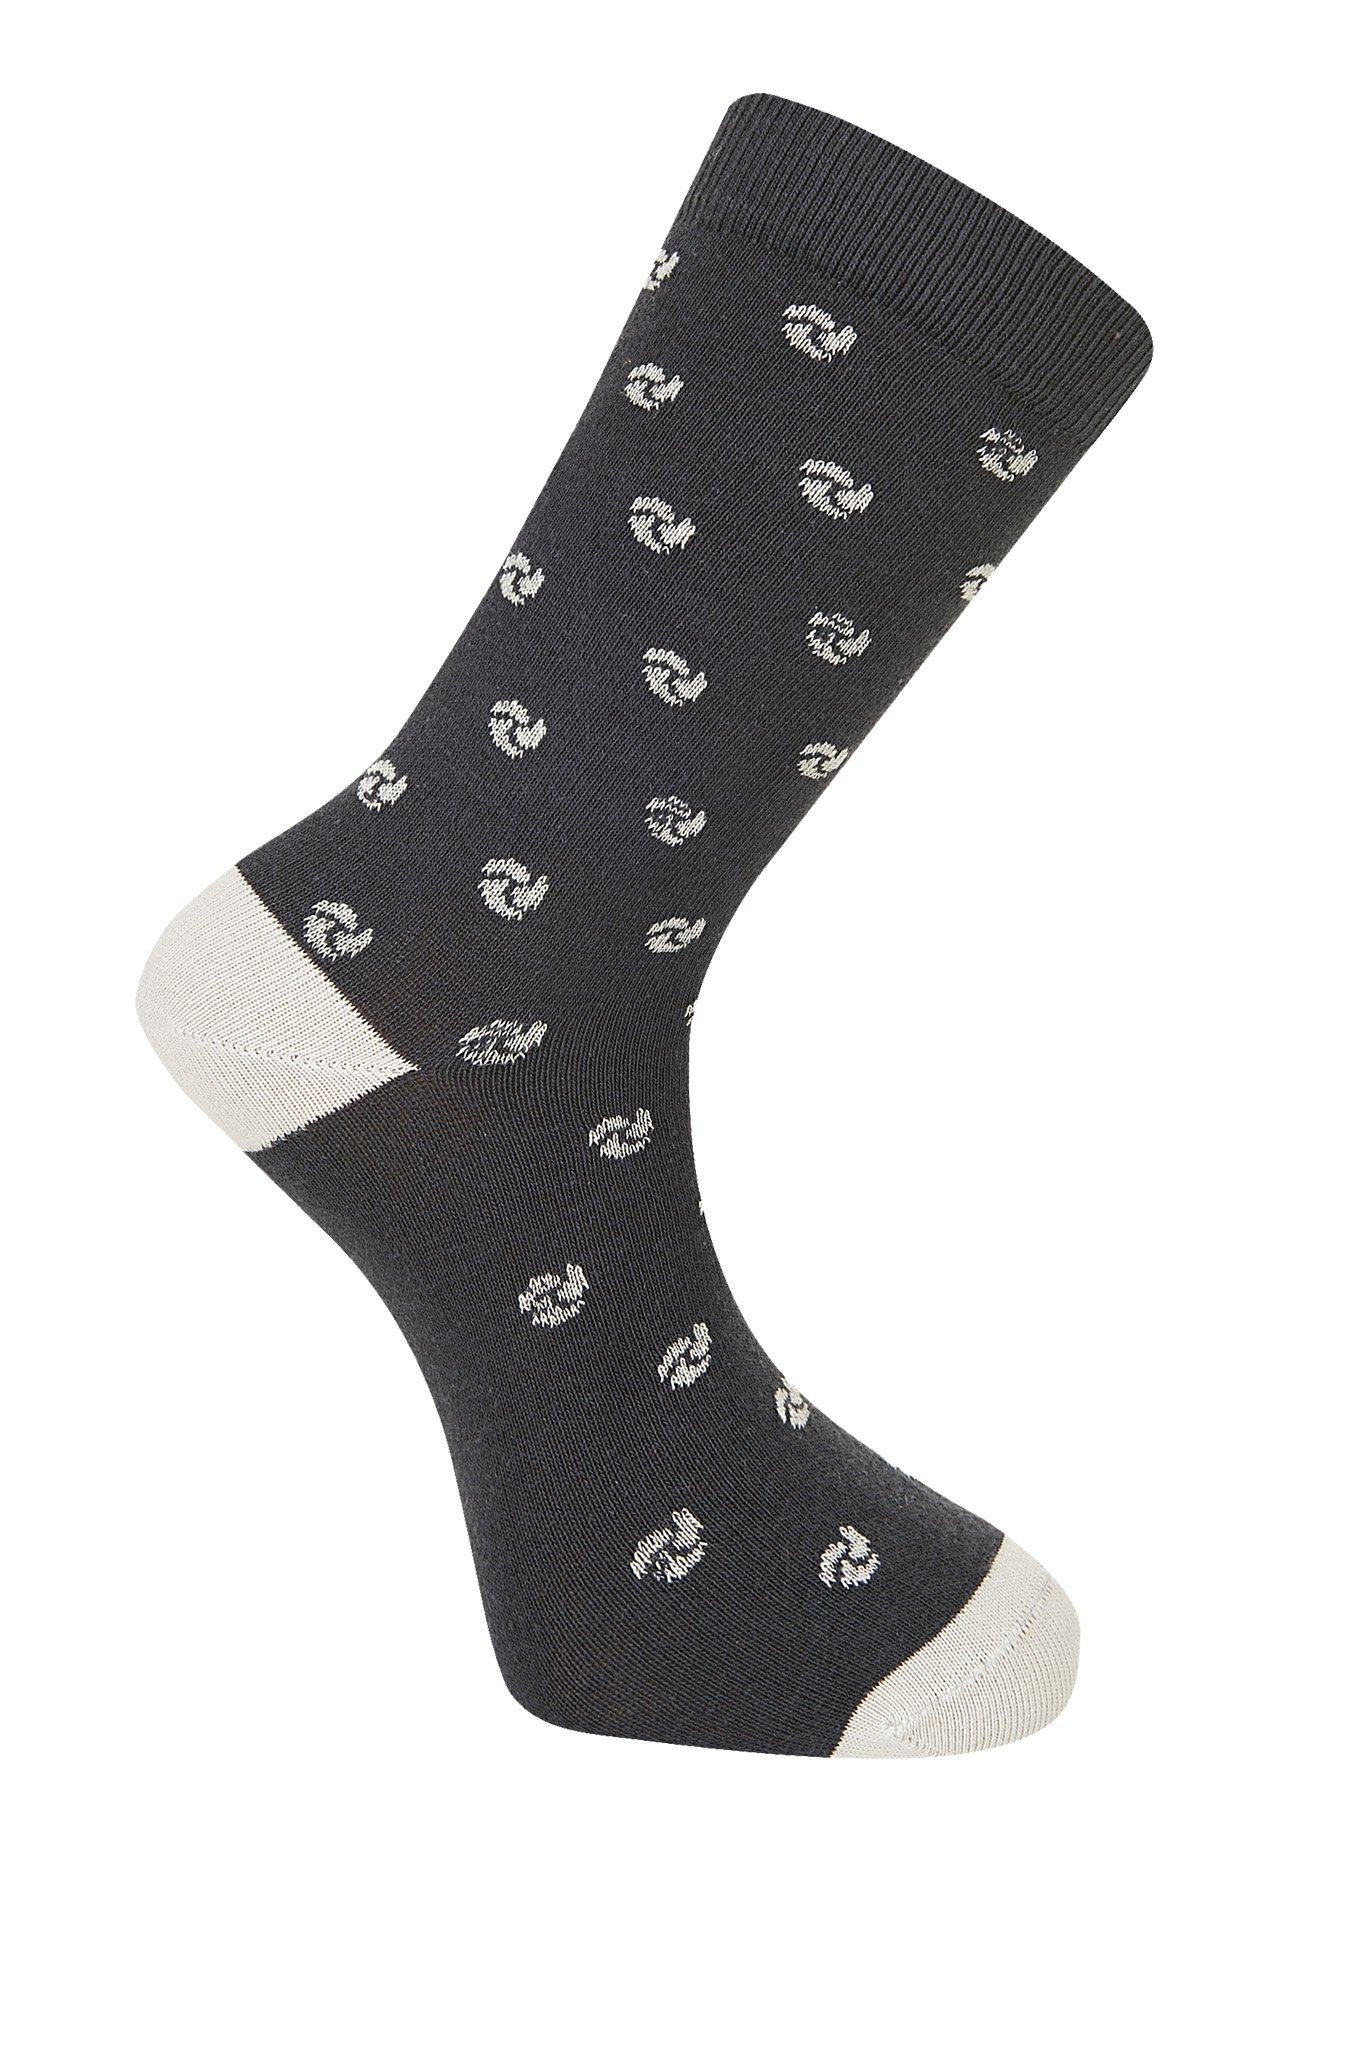 SASHIKO WAVE Coal Organic Cotton Socks - Komodo Fashion